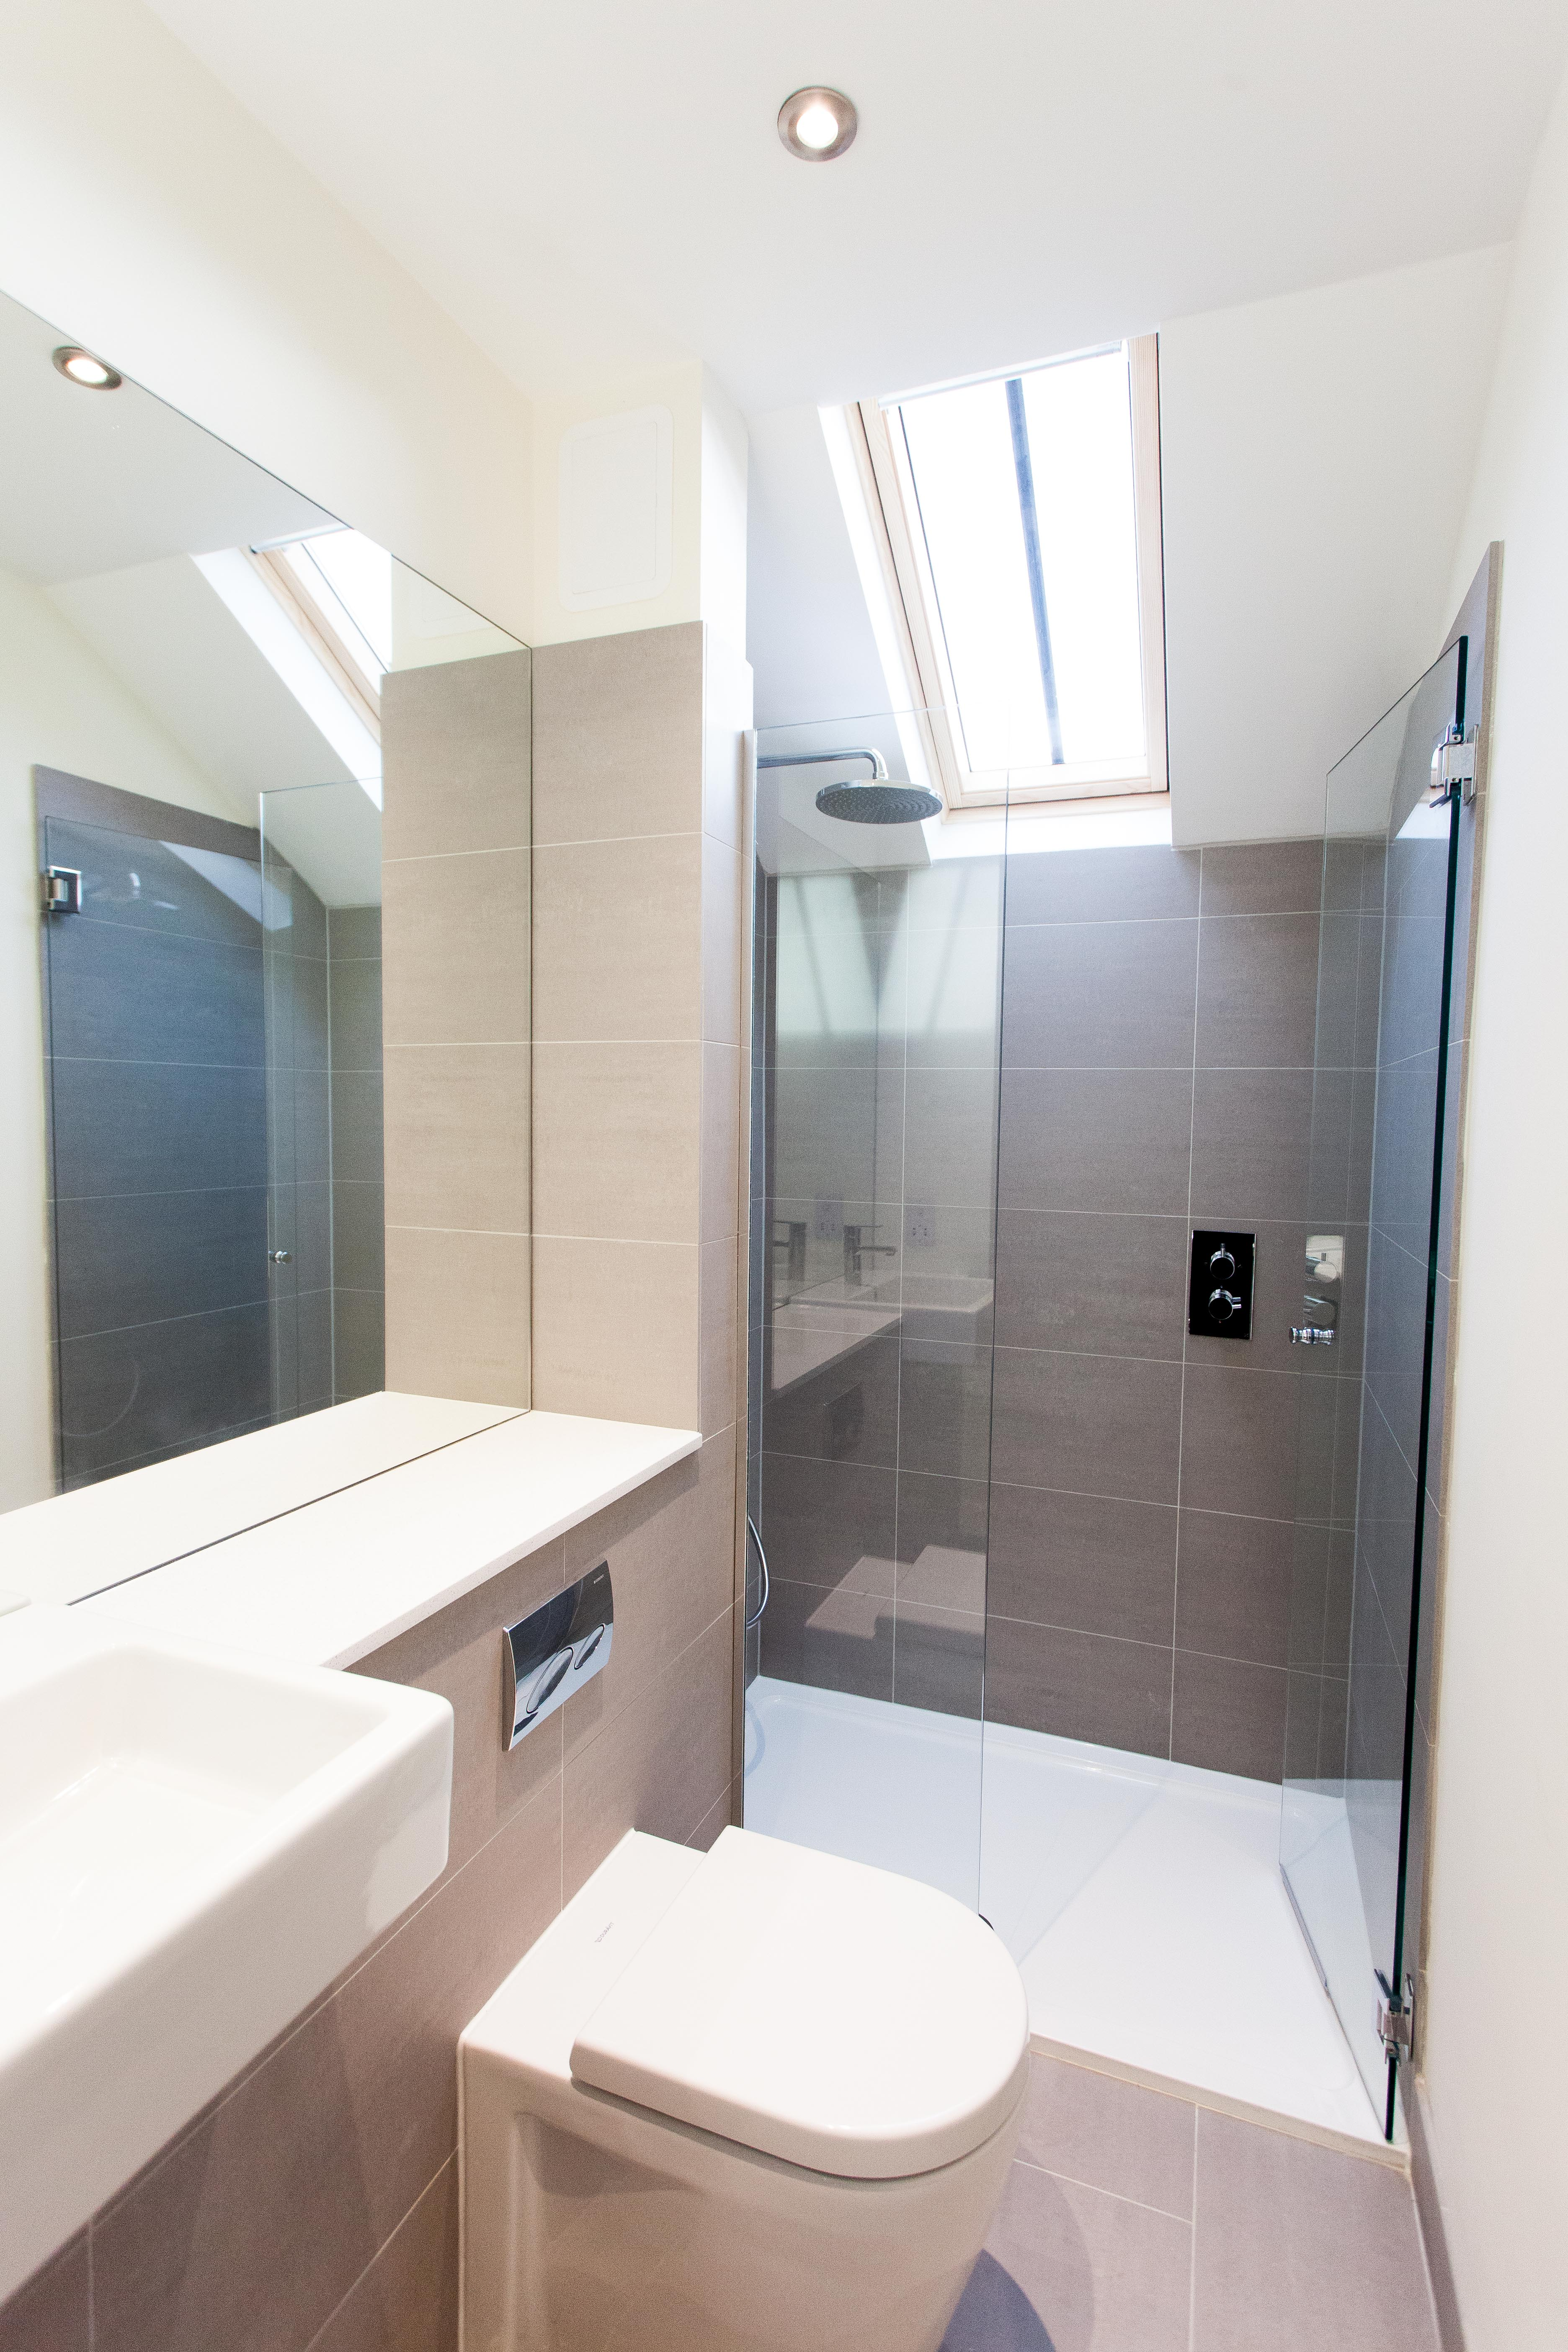 Modern Bathroom Wetroom shower cubicle with glass and dark tiles